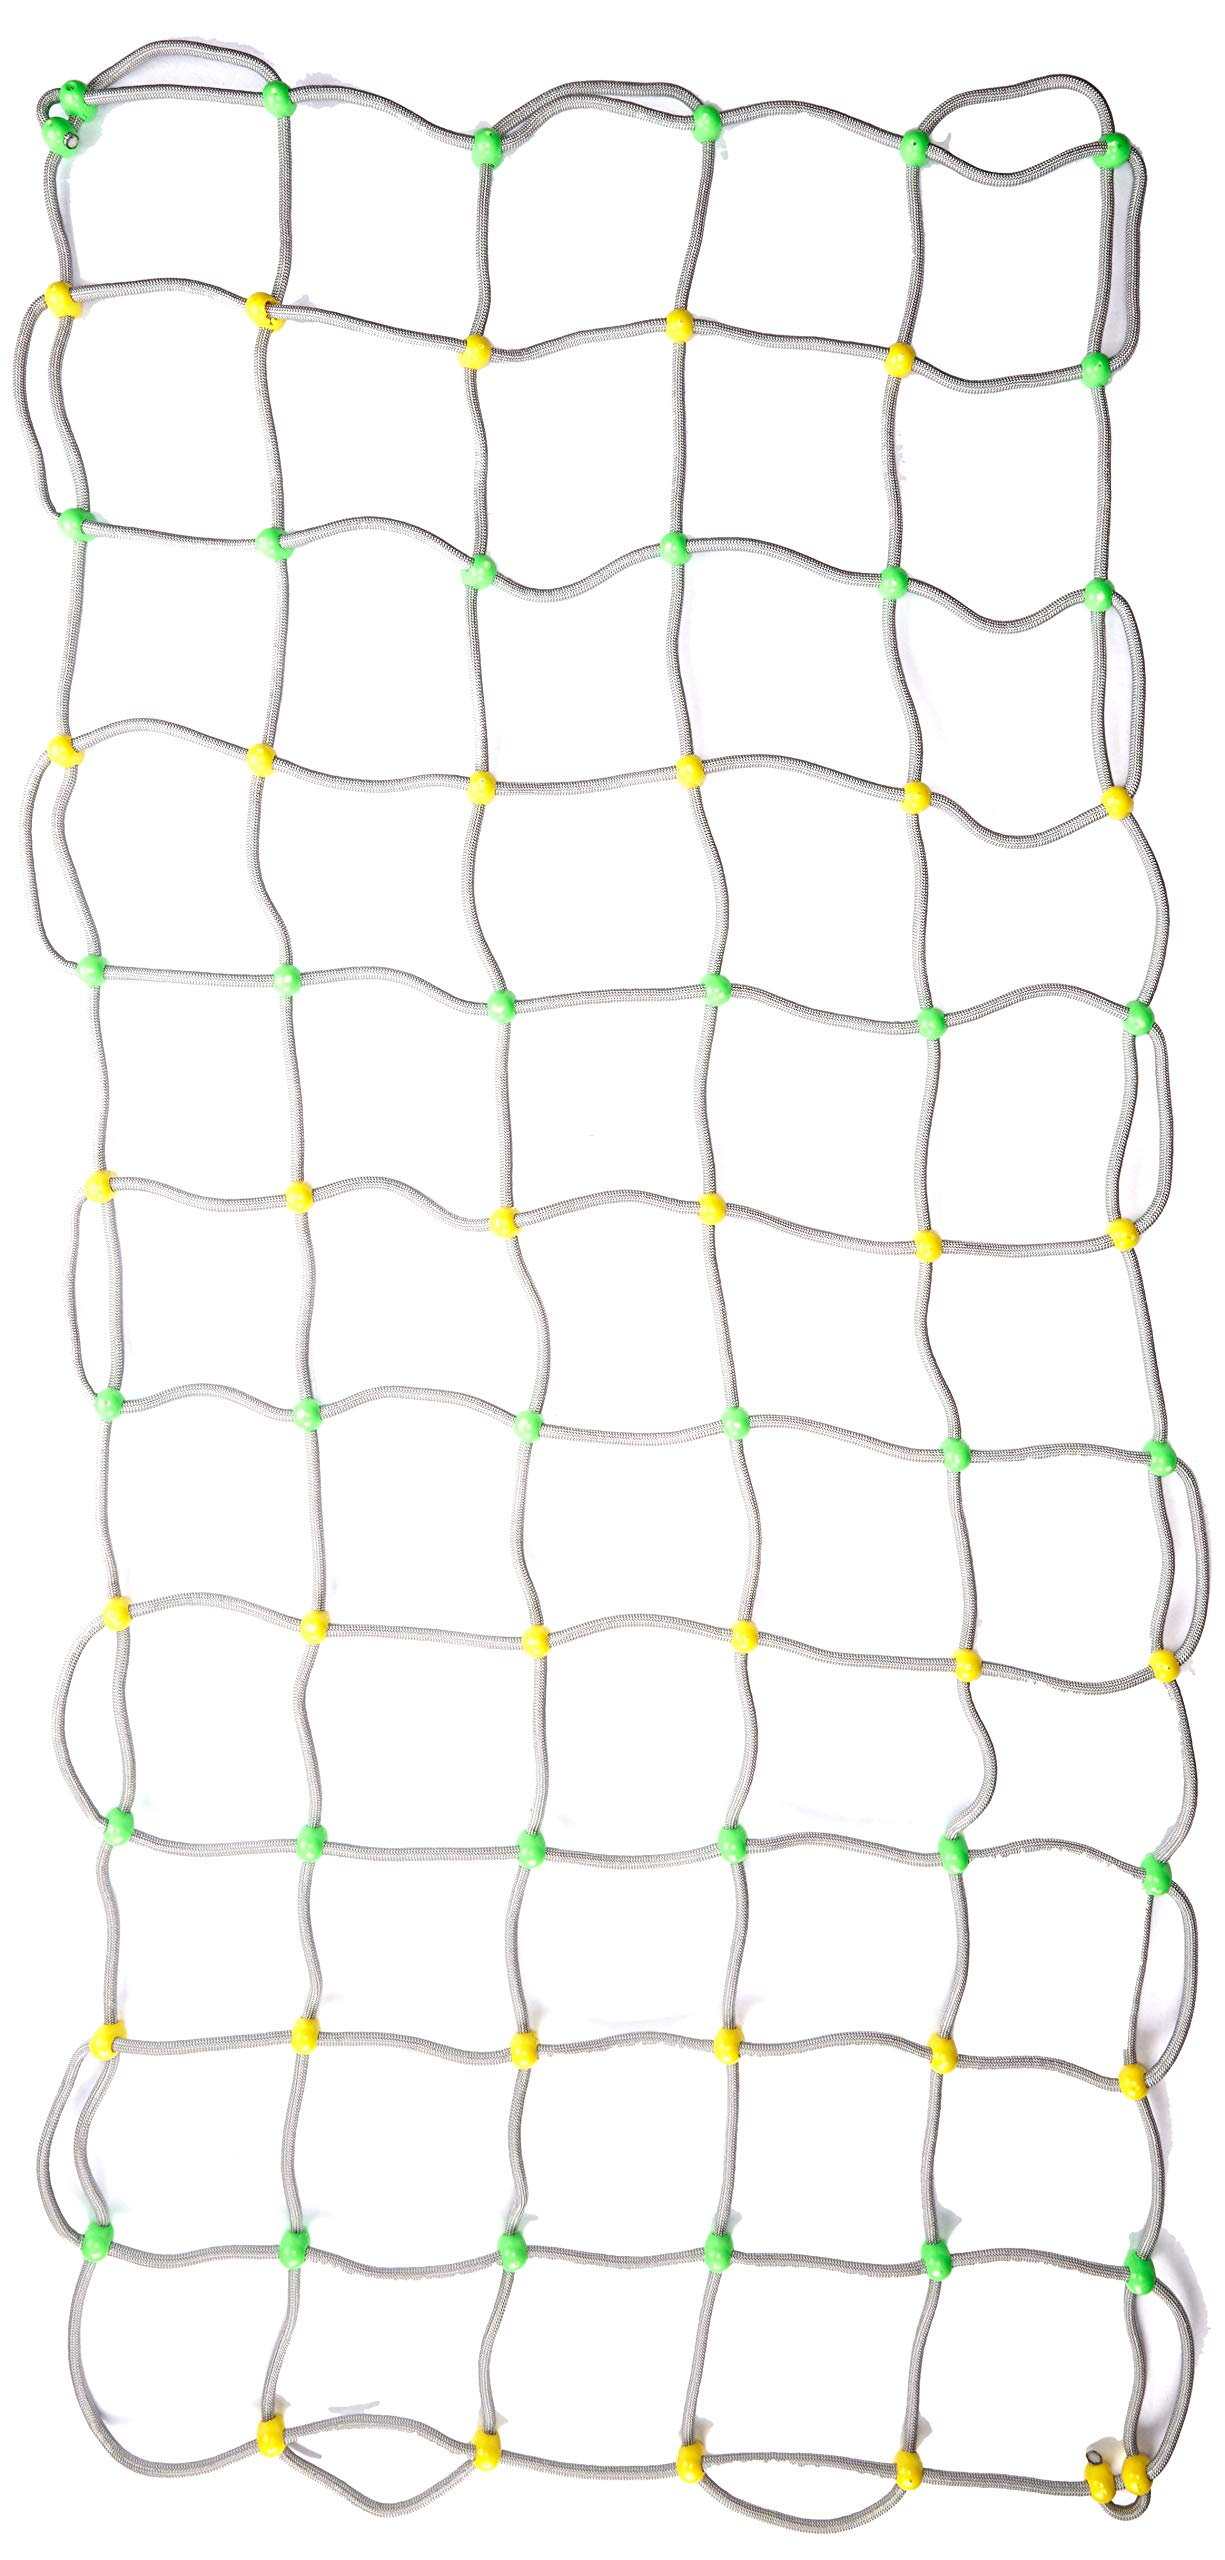 Aoneky 40'' x 86'' Climbing Cargo Net, Rope Climbing Toy for Kids Boys Ages 6 Year Old and up - 12mm Cord